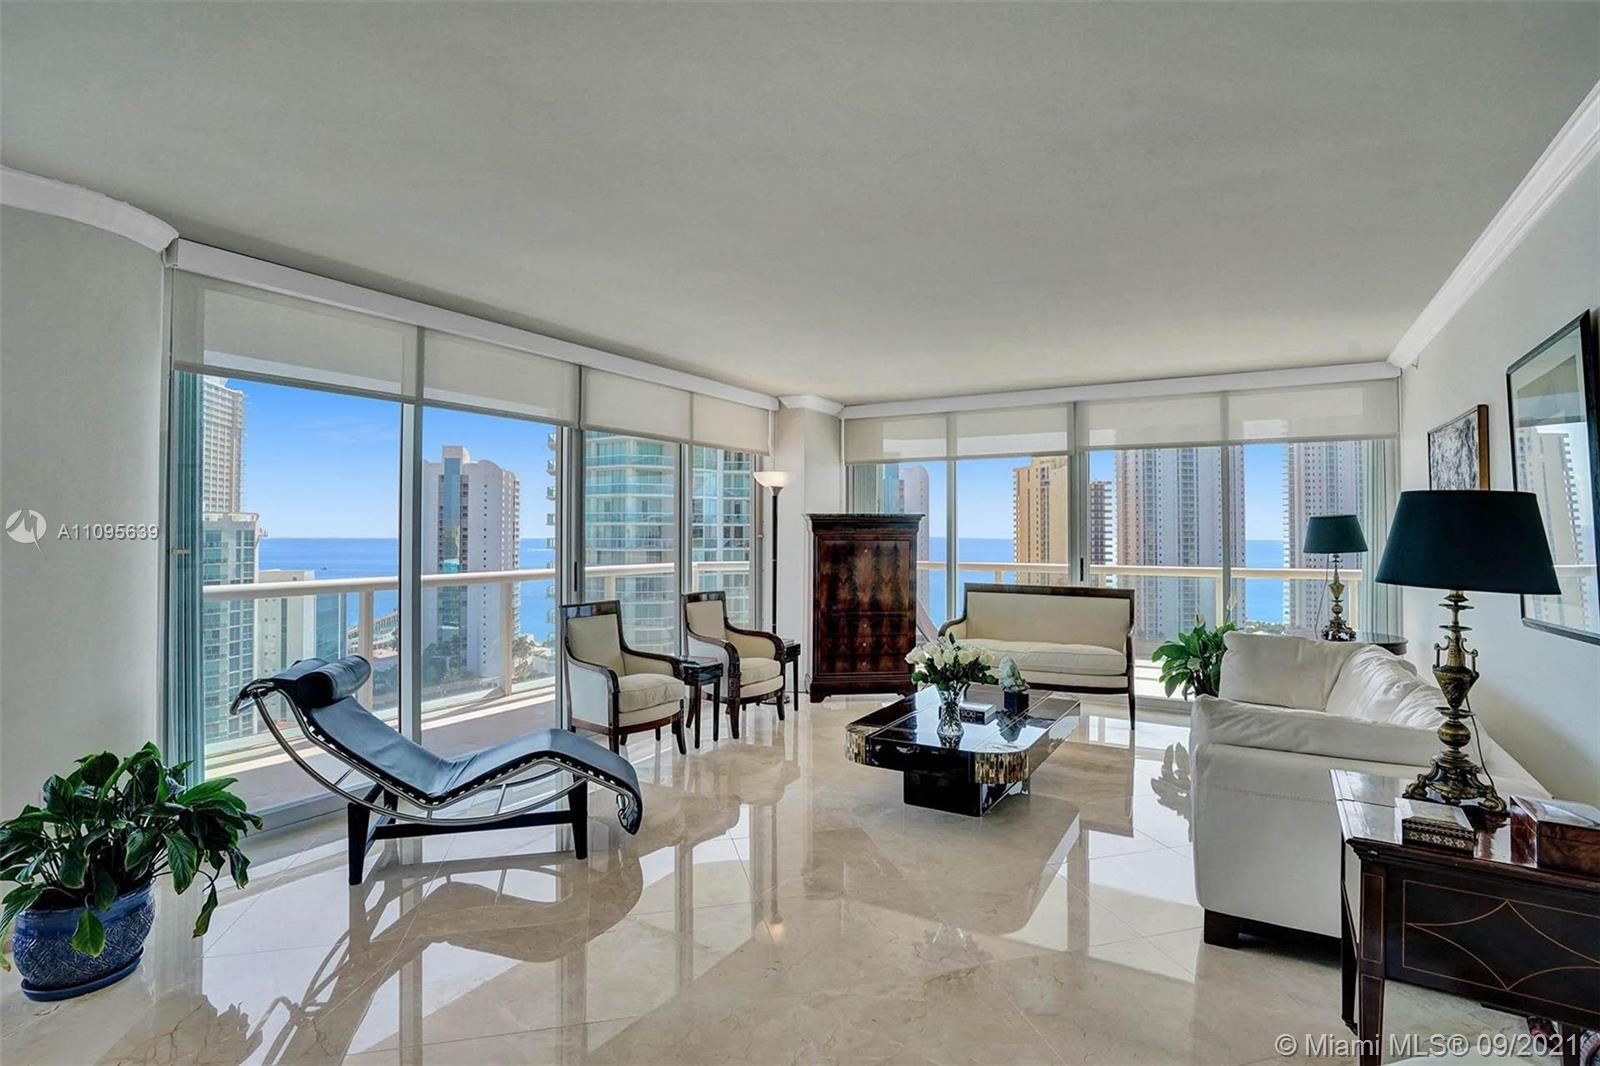 This special corner property is in the sought out area of Sunny Isles Beach. It has breathtaking vie